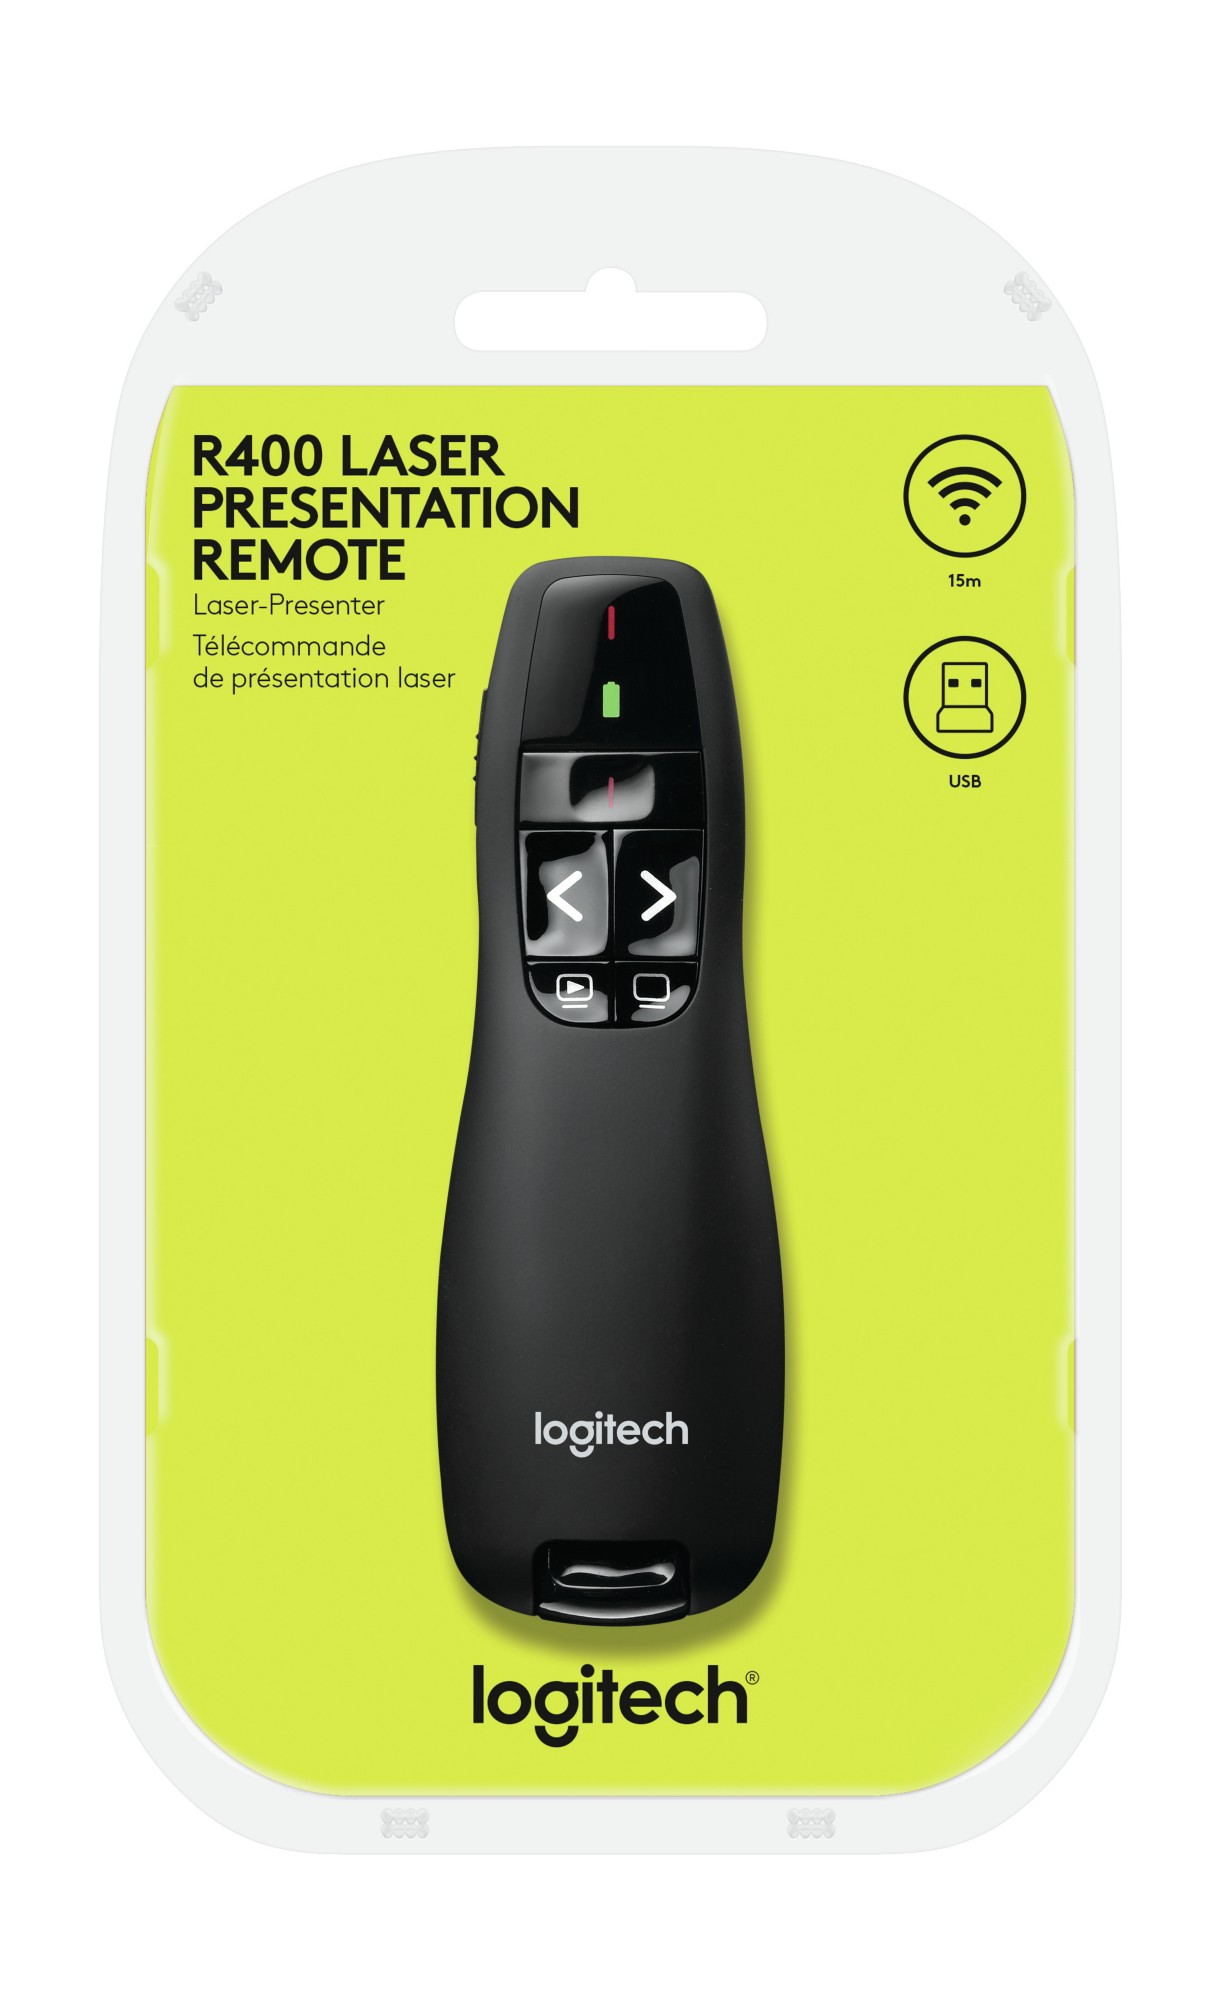 SUPER-SALE: Logitech R400 Presenter